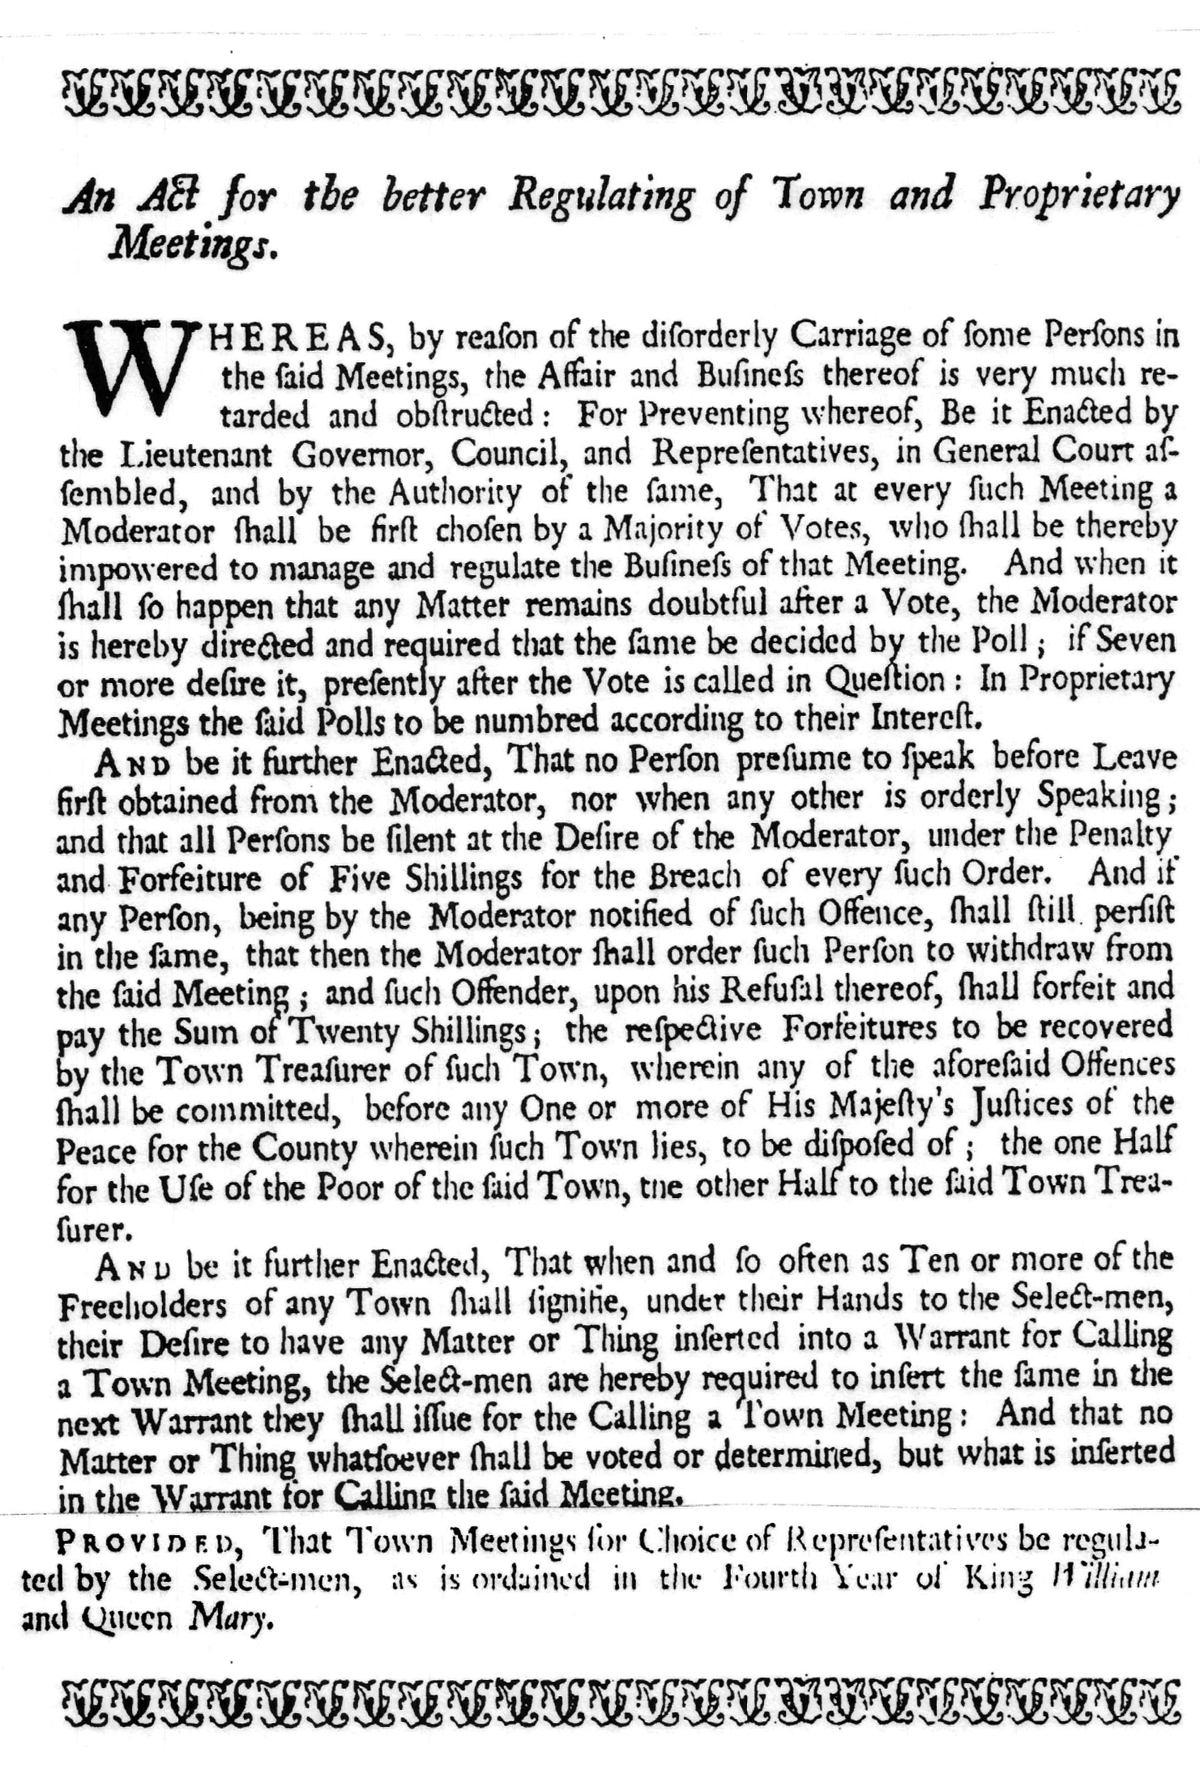 MA Chapter 244 of the Acts of 1715